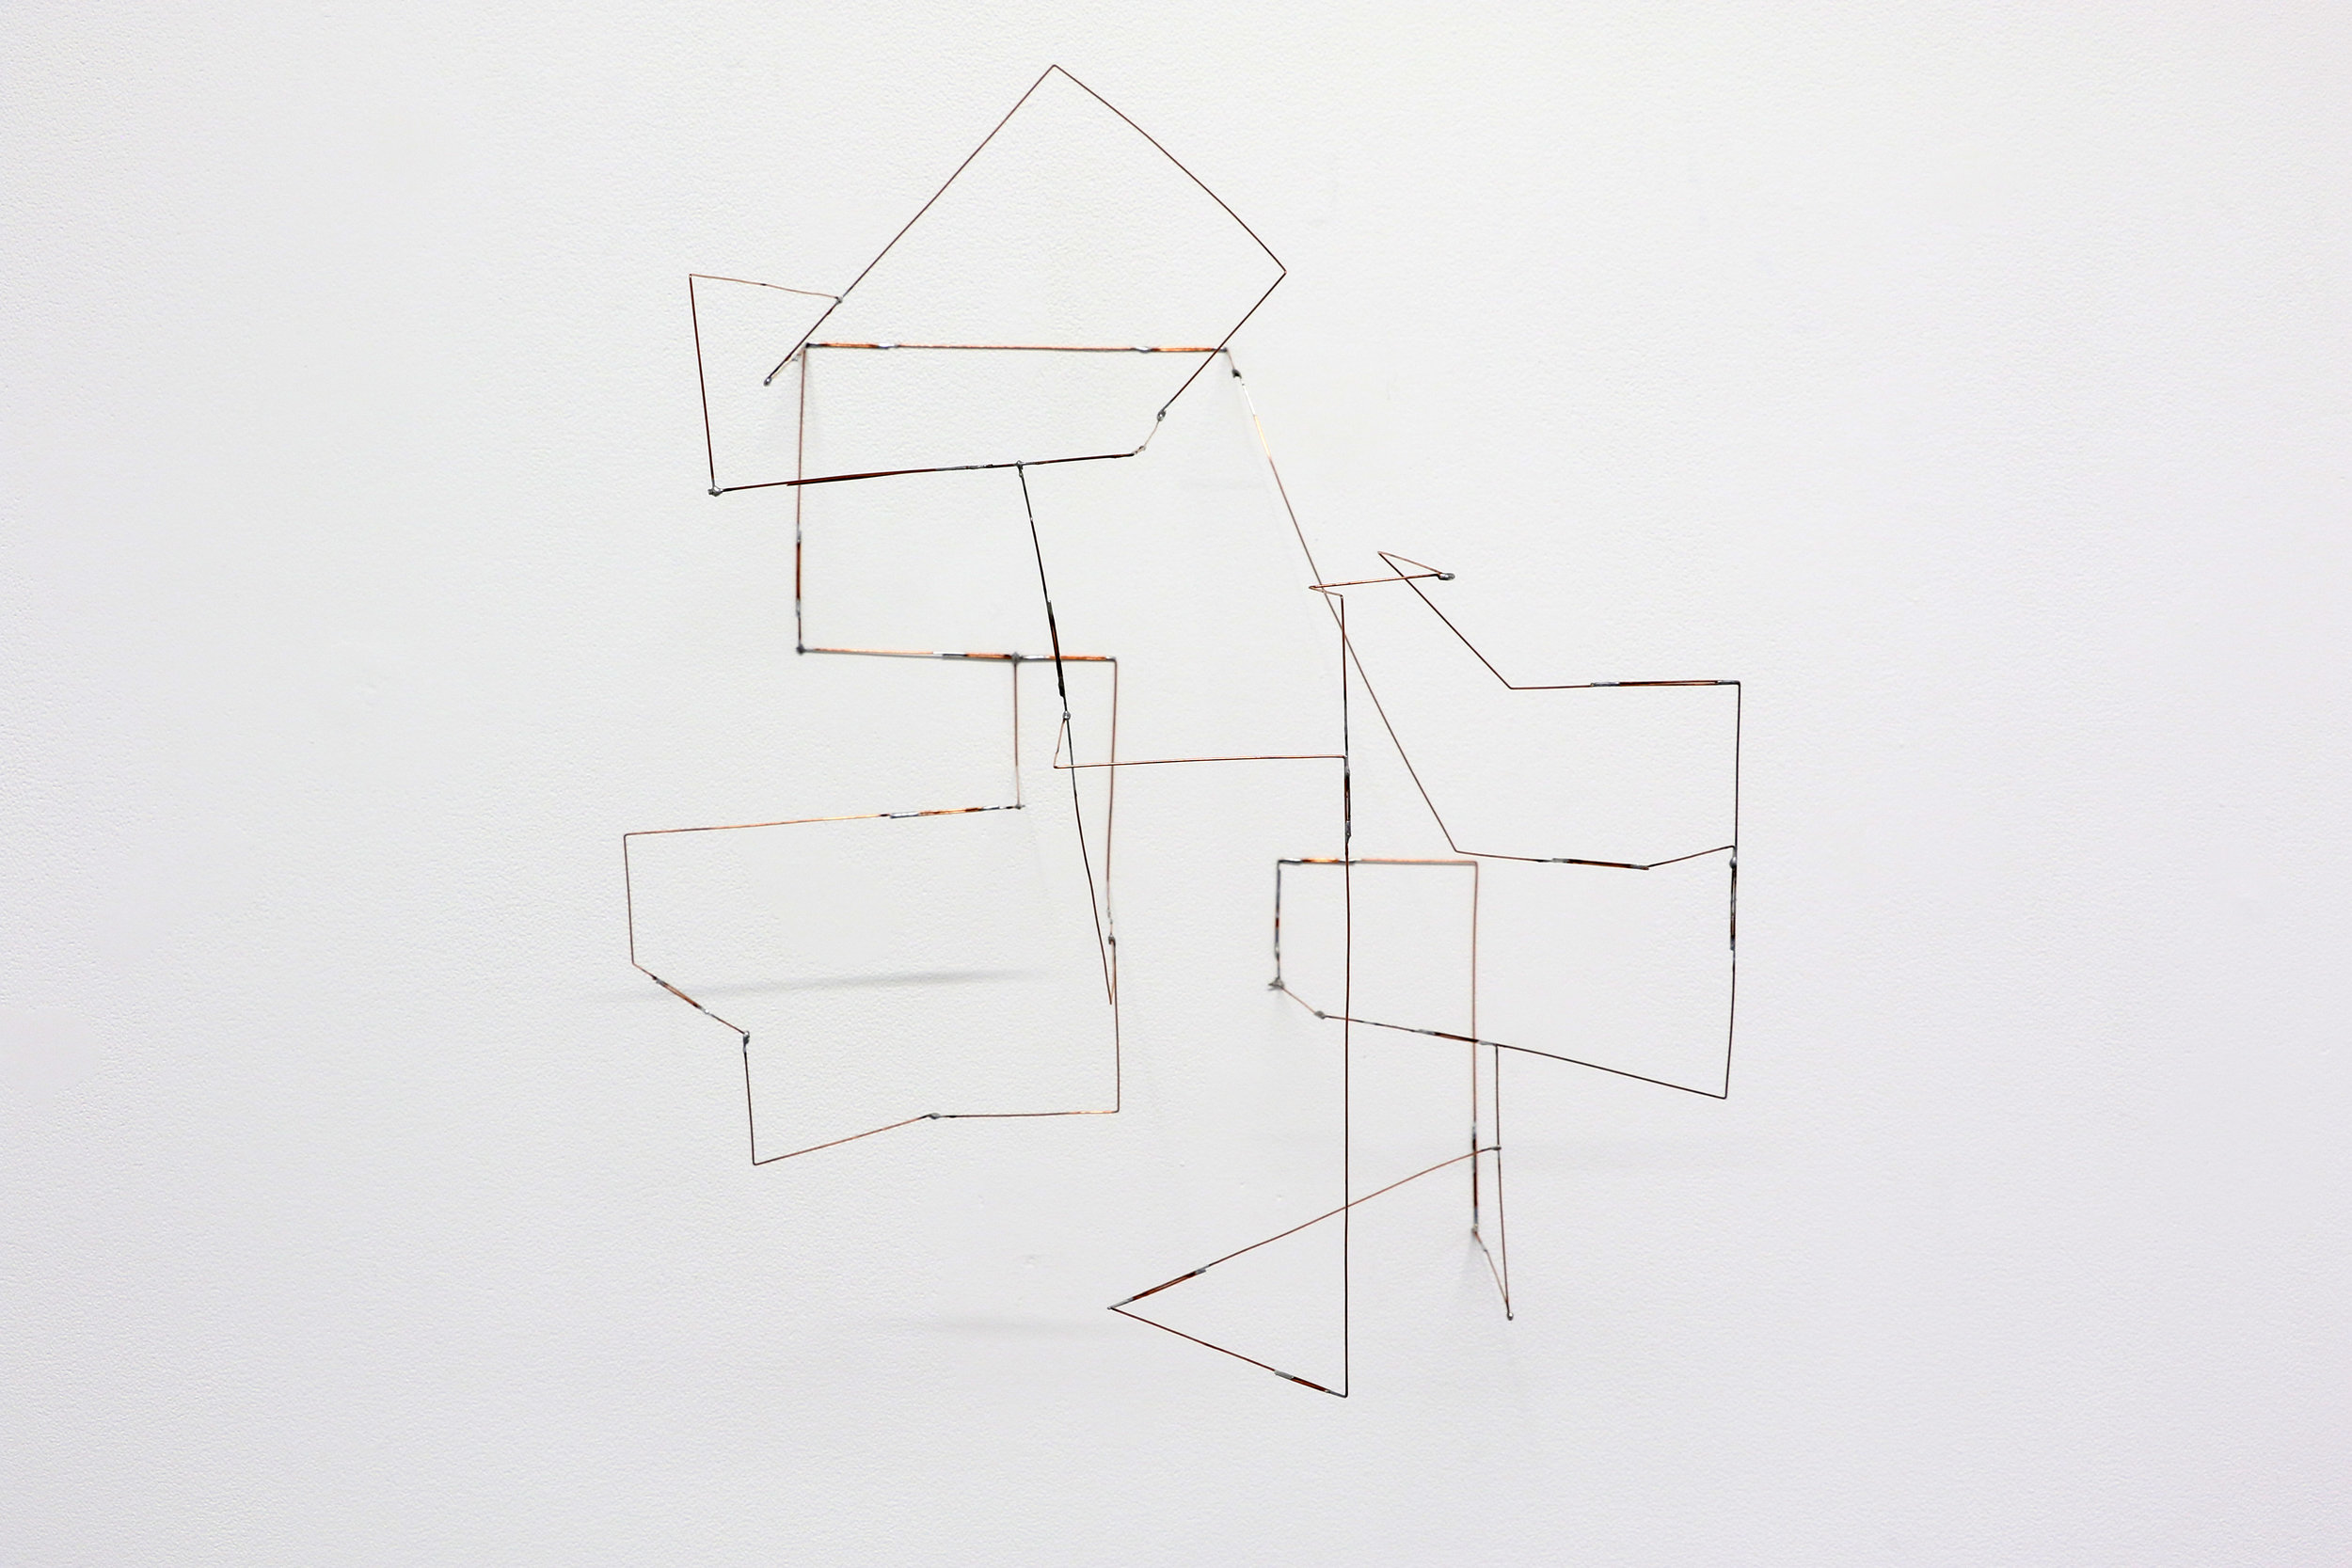 Quindt , 2019, 19 x 16 x 13 inches, soldered copper-coated steel wire